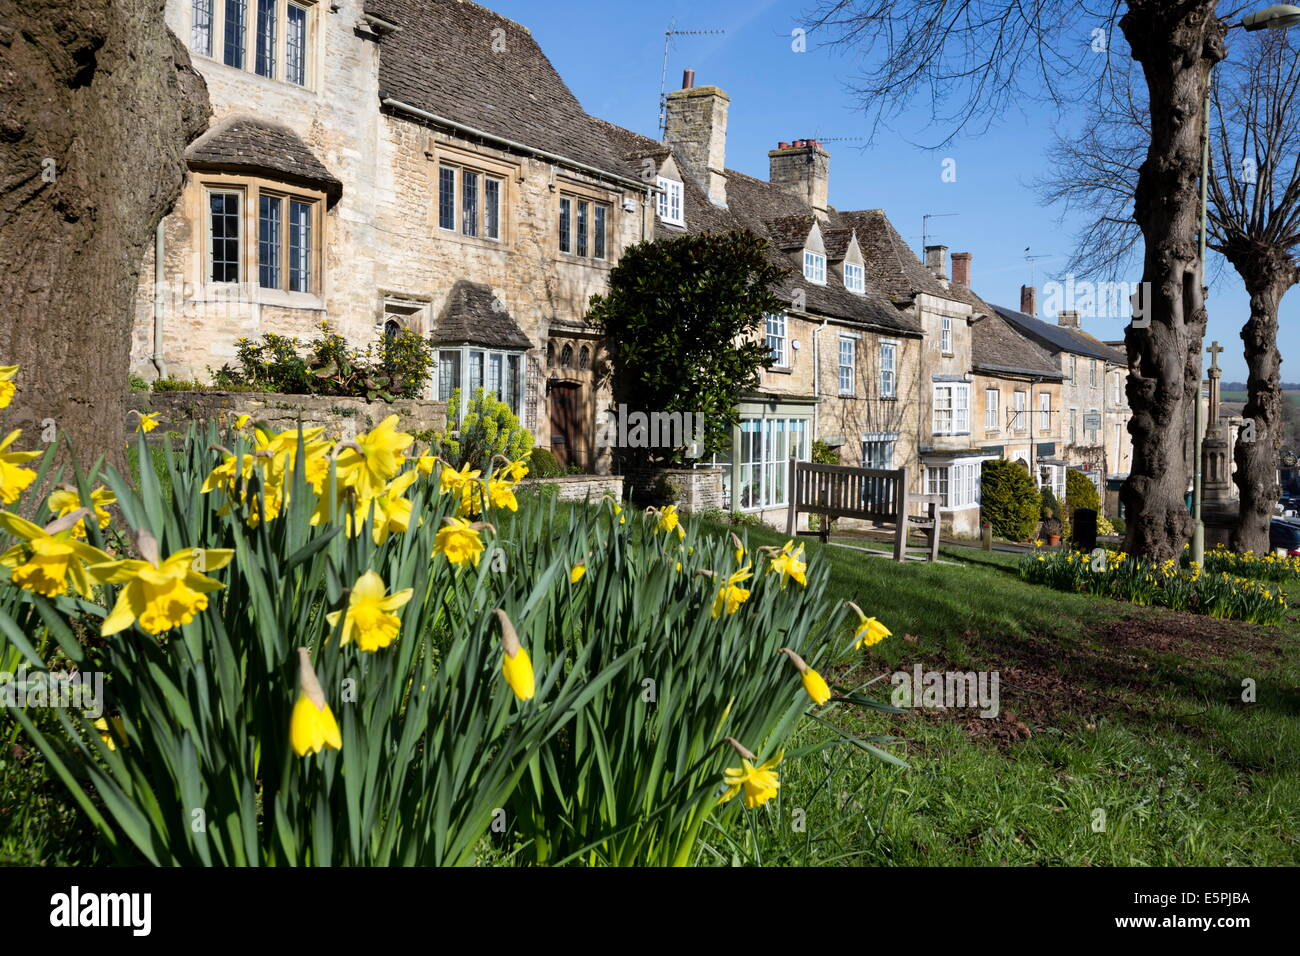 Cotswold cottages along The Hill with spring daffodils, Burford, Cotswolds, Oxfordshire, England, United Kingdom, - Stock Image